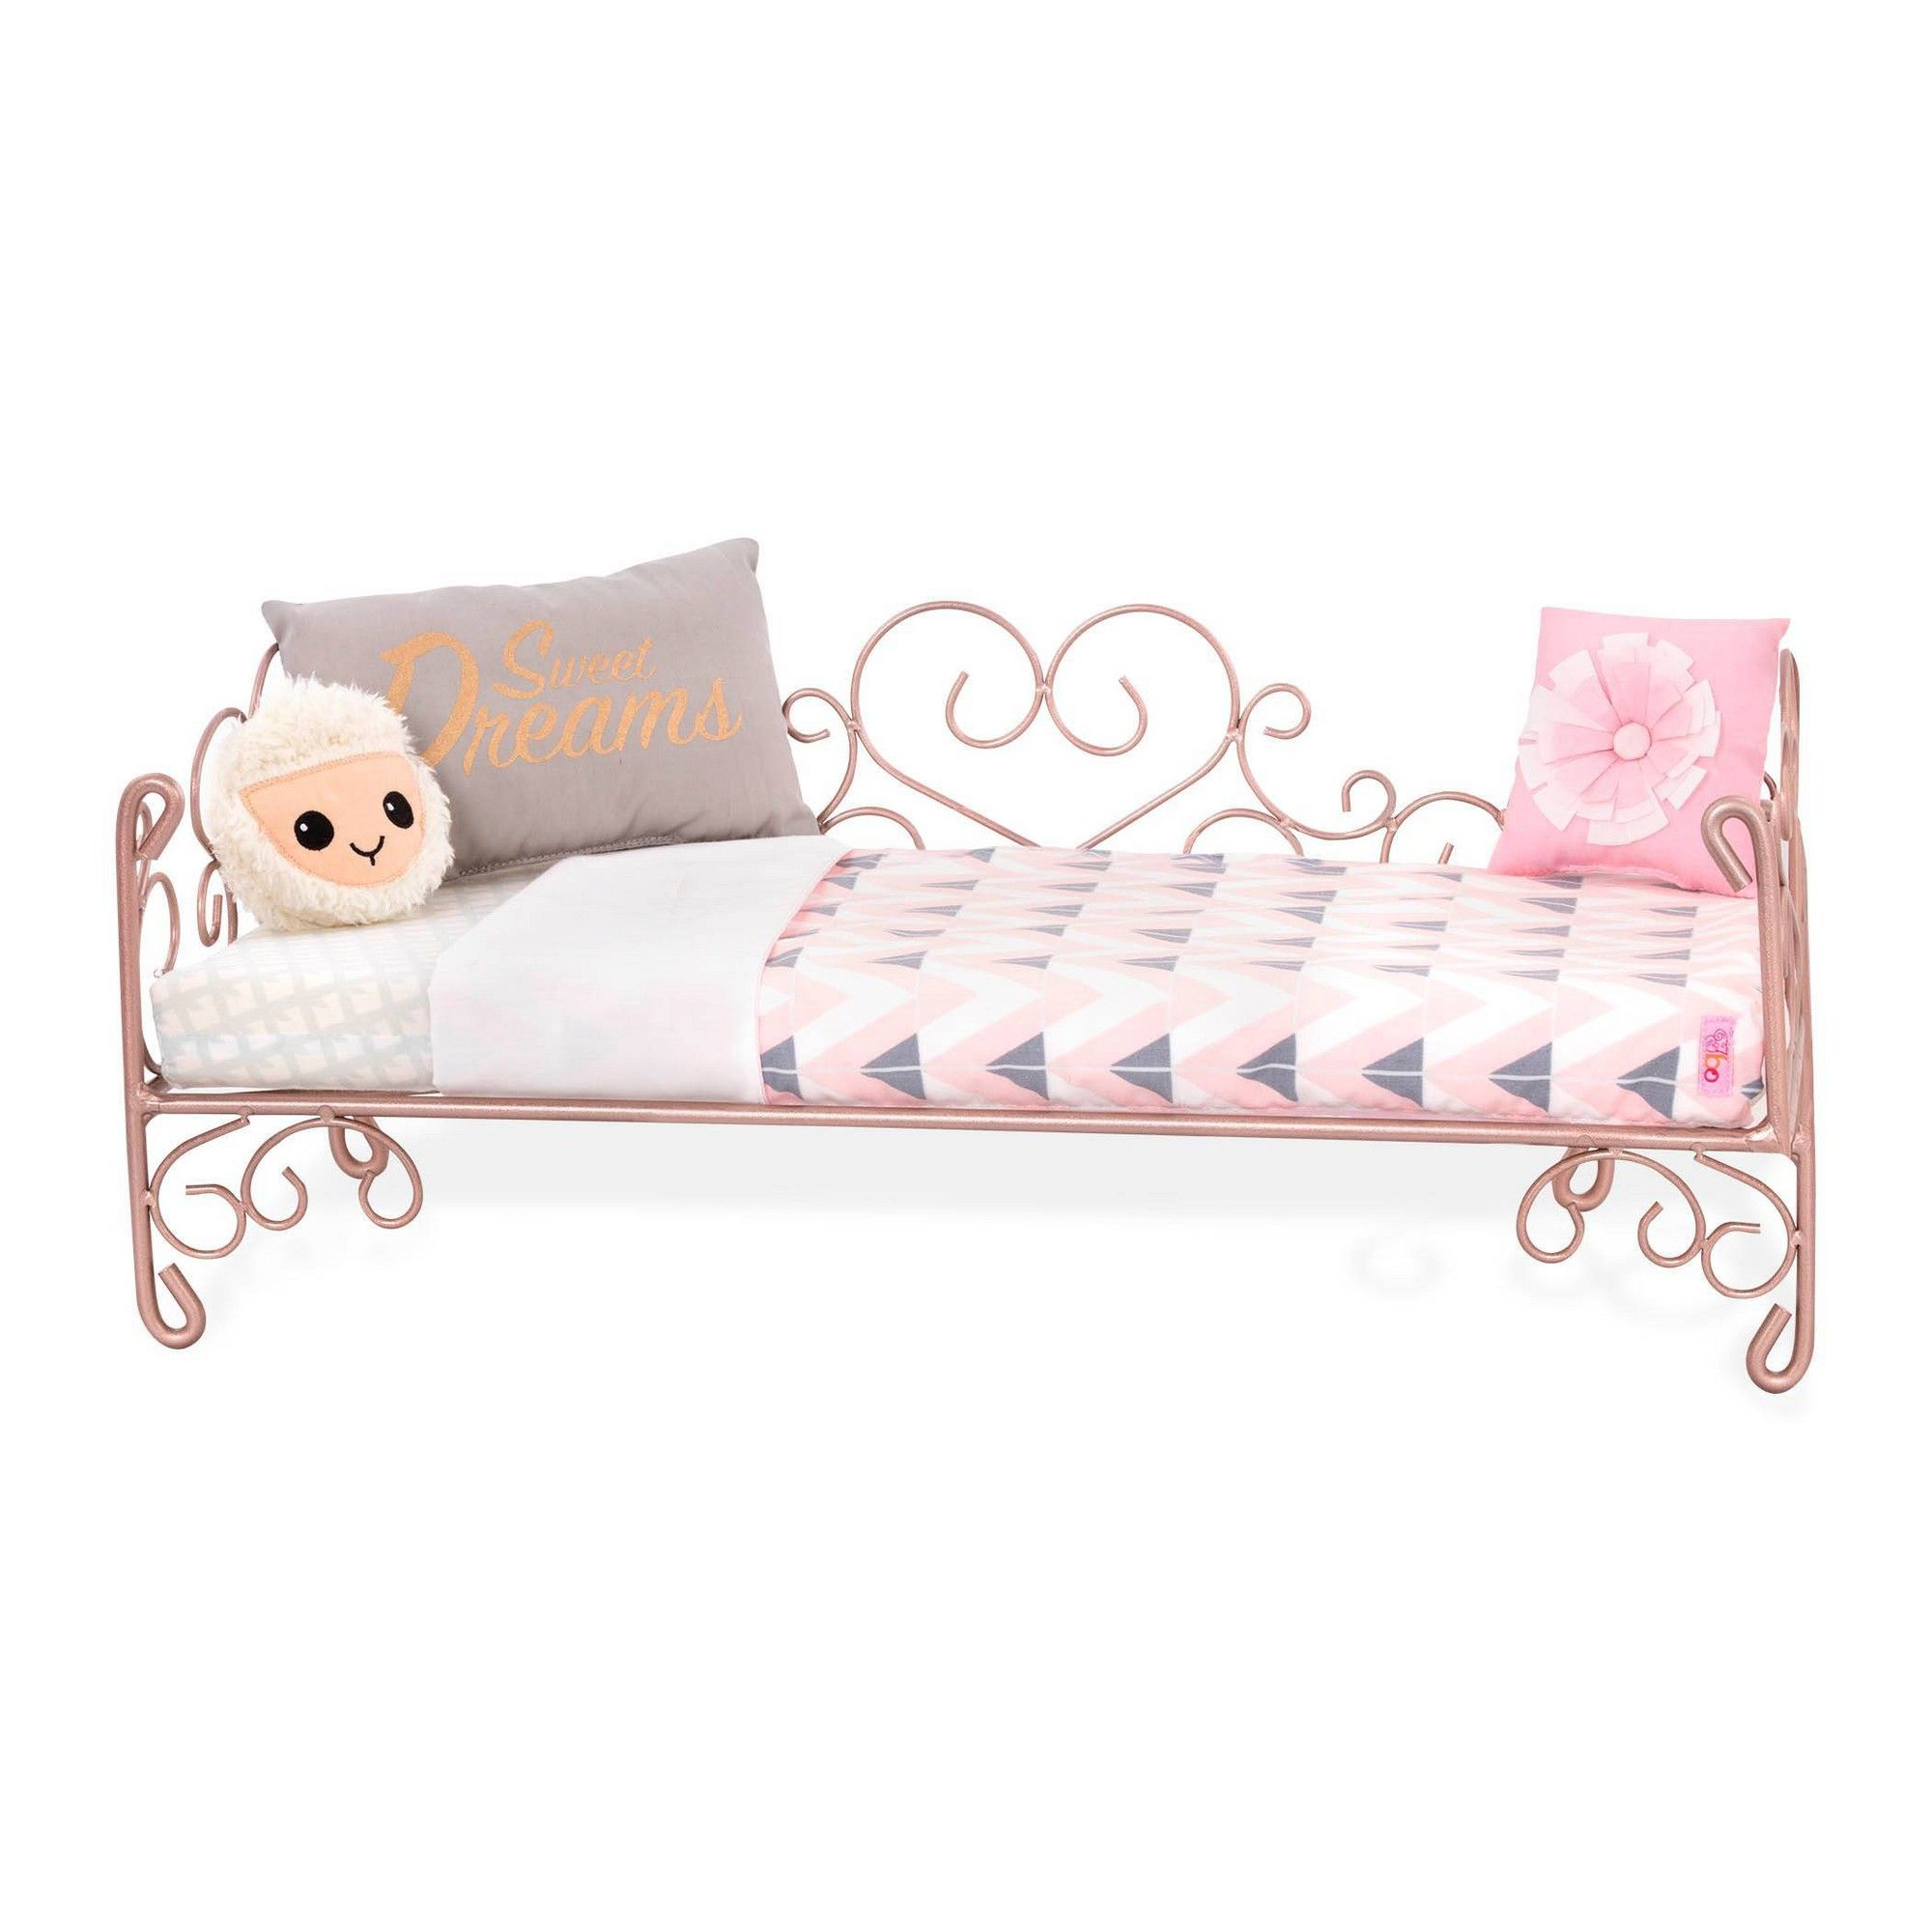 Our Generation Scrollwork Bed - Sweet Dreams #americangirlhouse